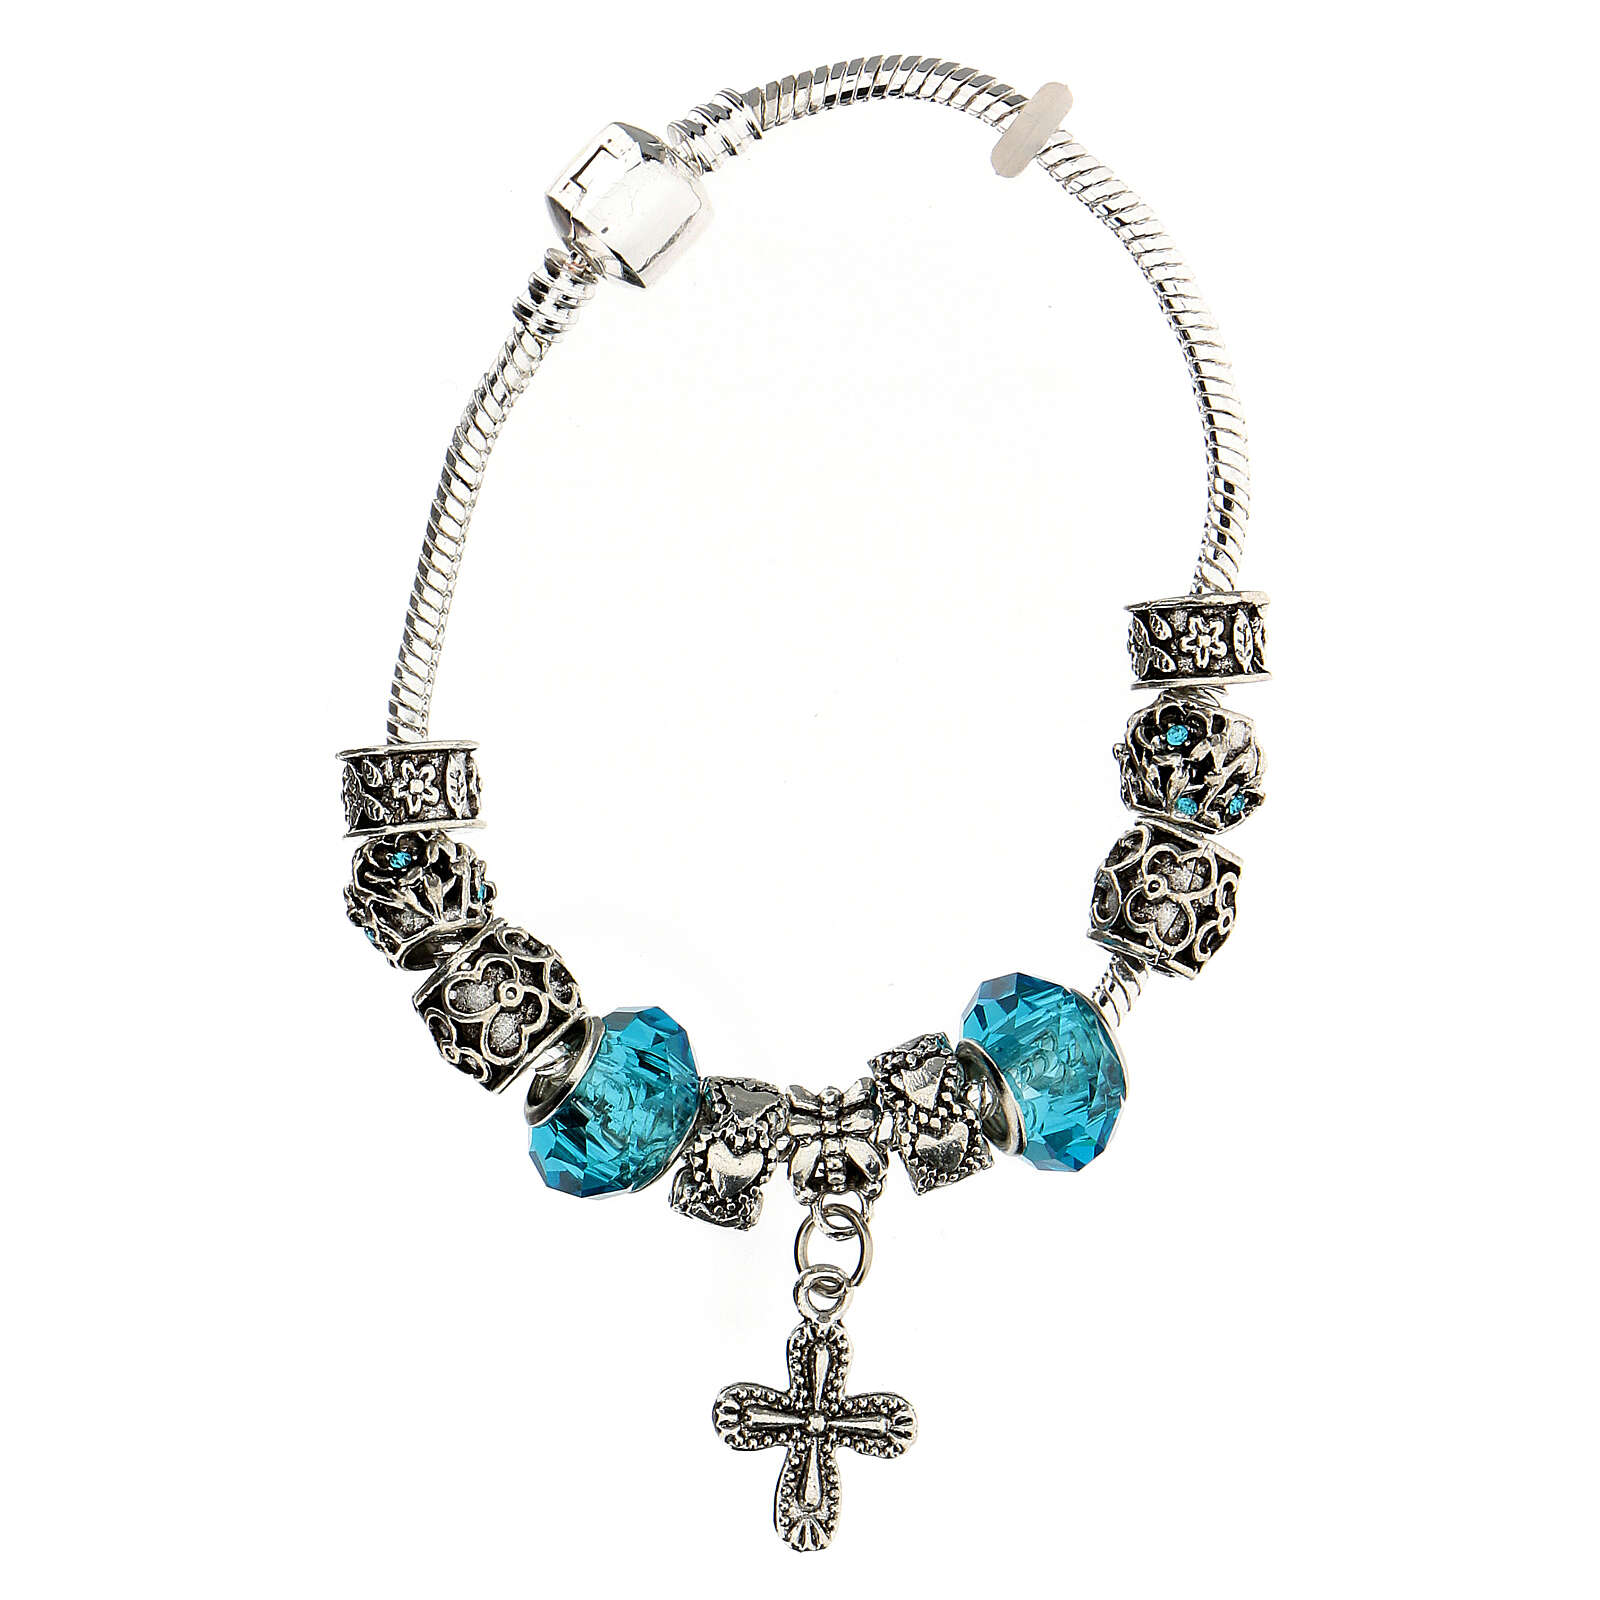 Rosary charm bracelet 8x10 mm metal cross charm blue crystals 4